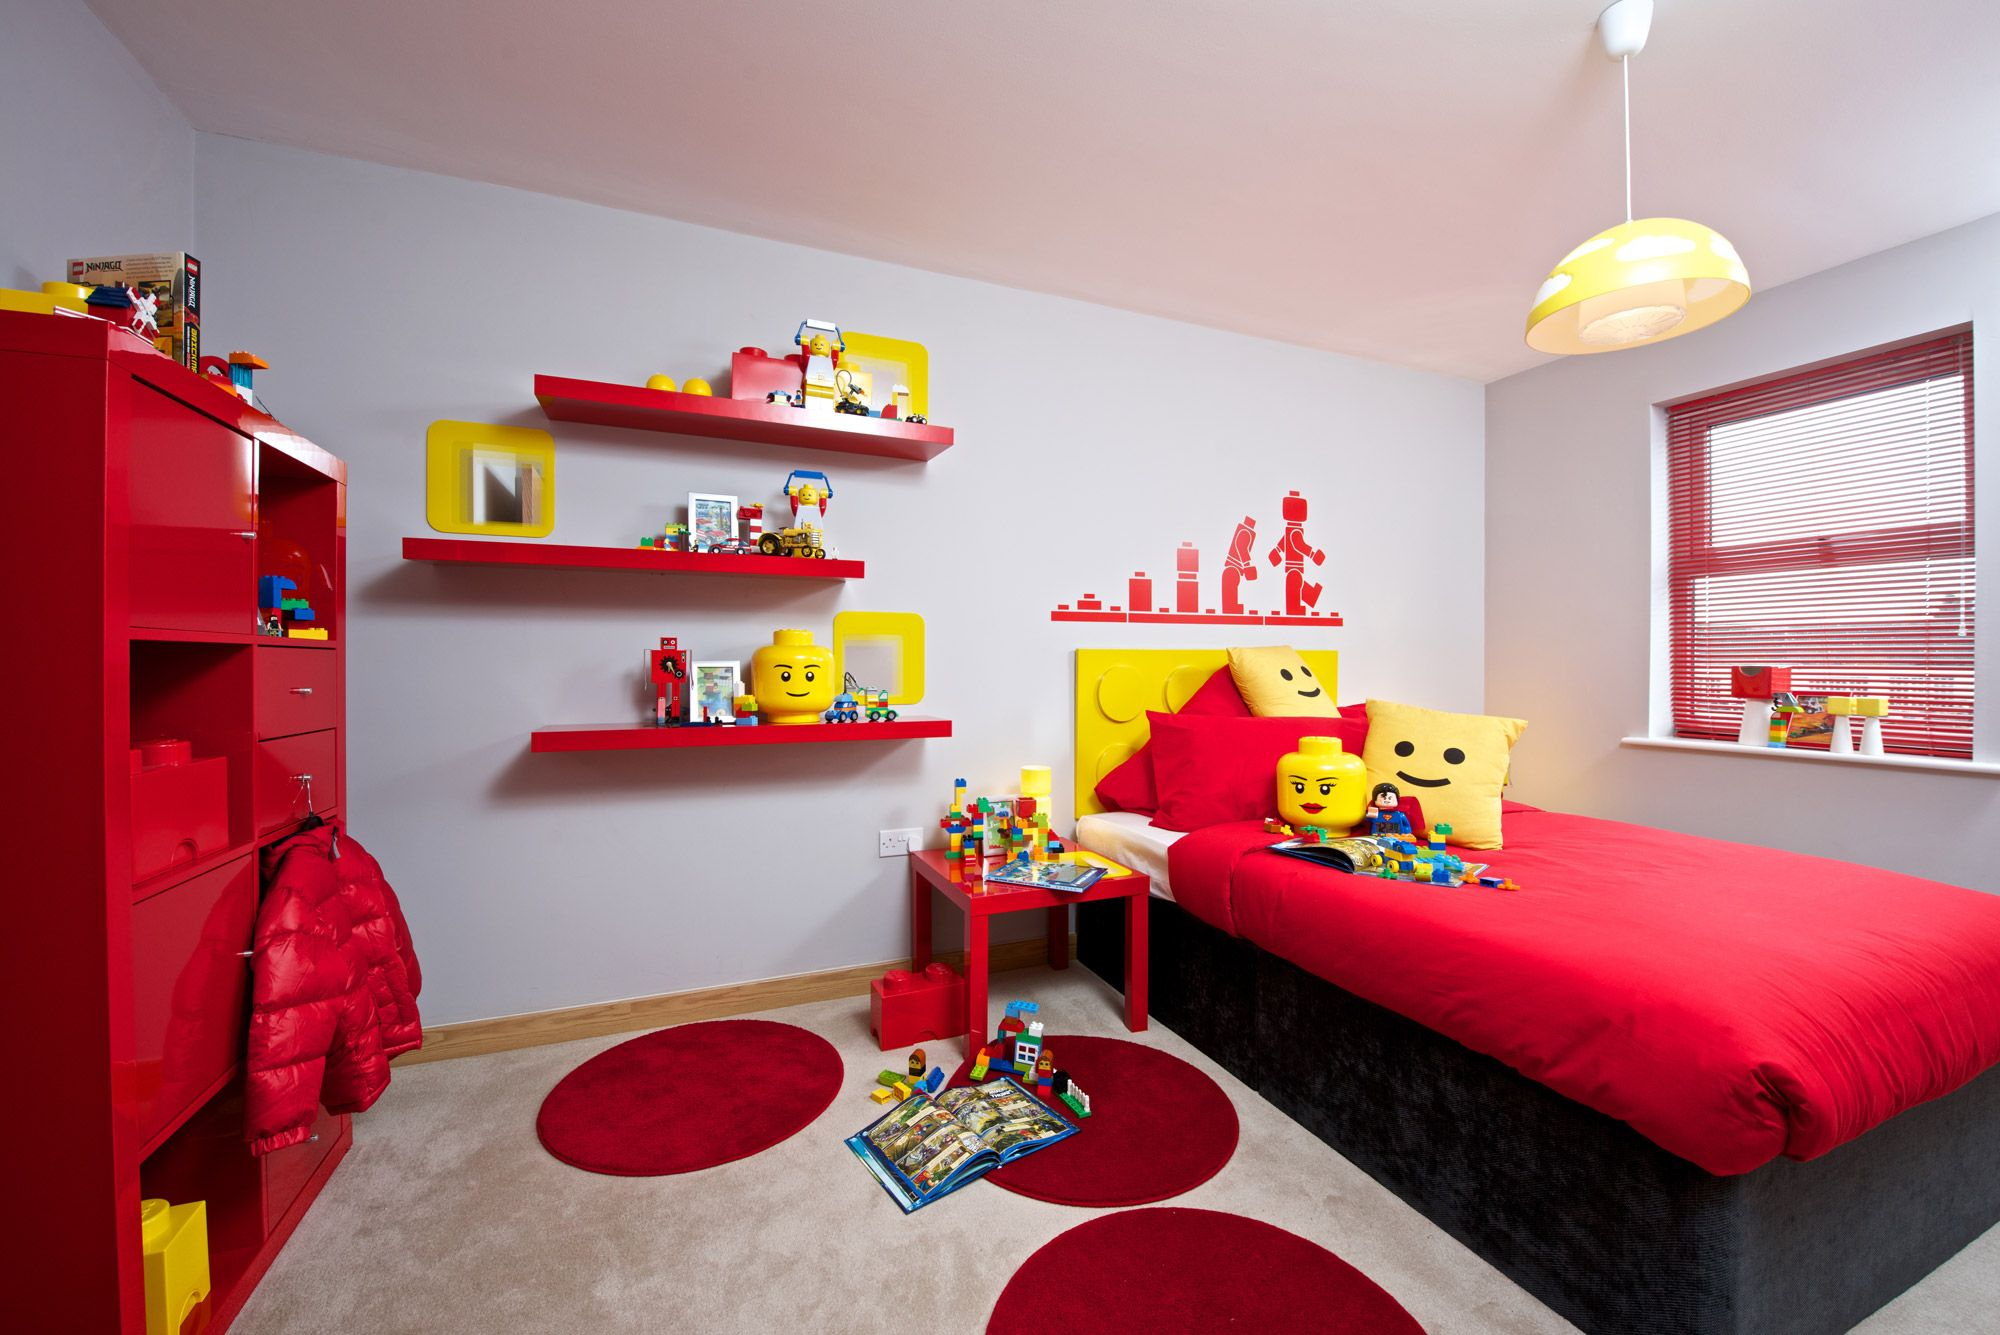 Room 2 Build Bedroom Kids Lego: The Ultimate Kid's Room Made With A Favorite Toy